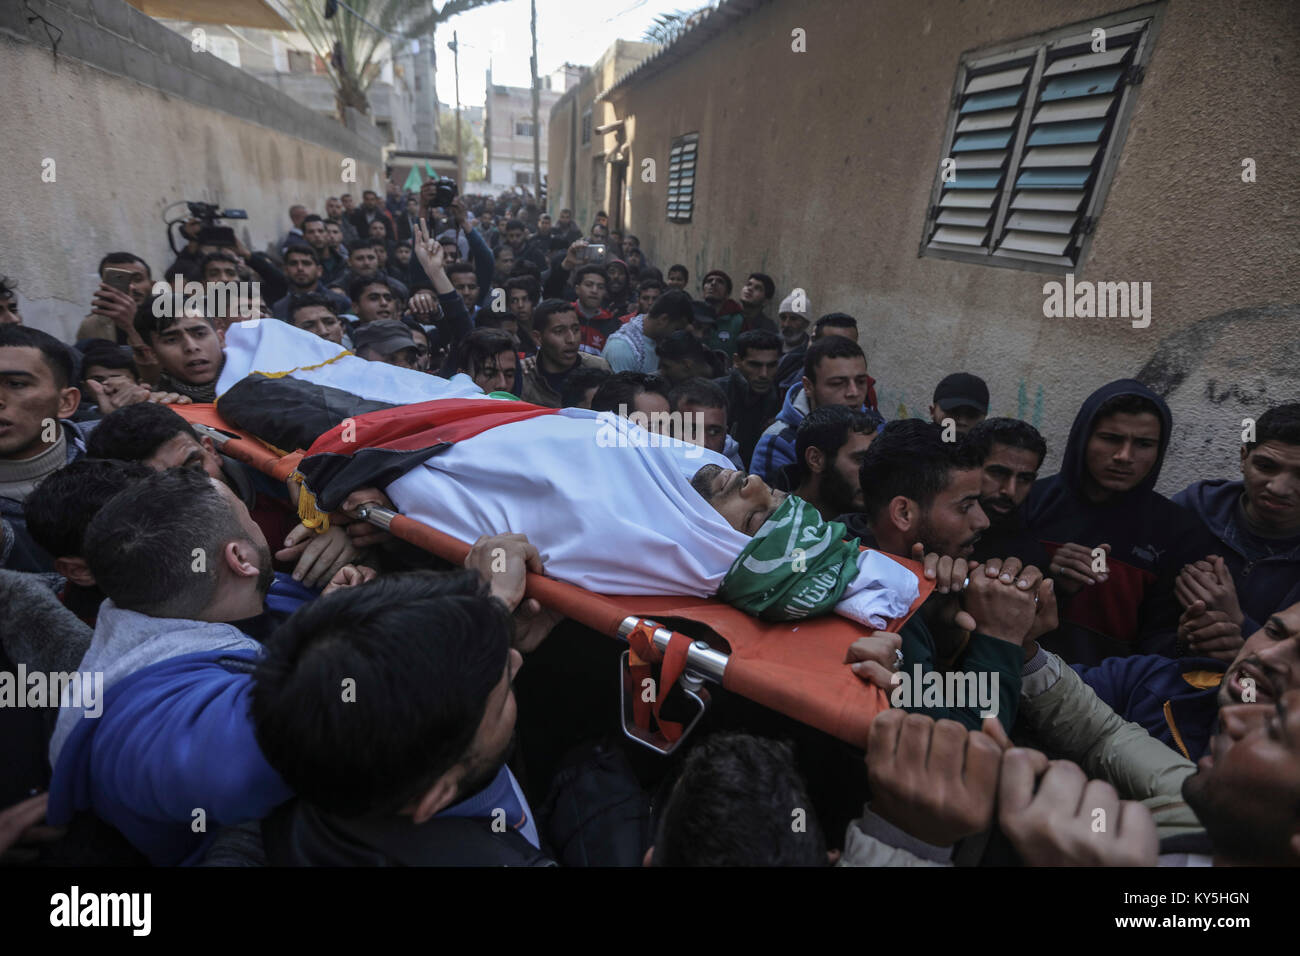 Relatives and mourners carry the body of 32-year-old Palestinian fisherman Abdullah Ramadan Zidan, during his funeral - Stock Image